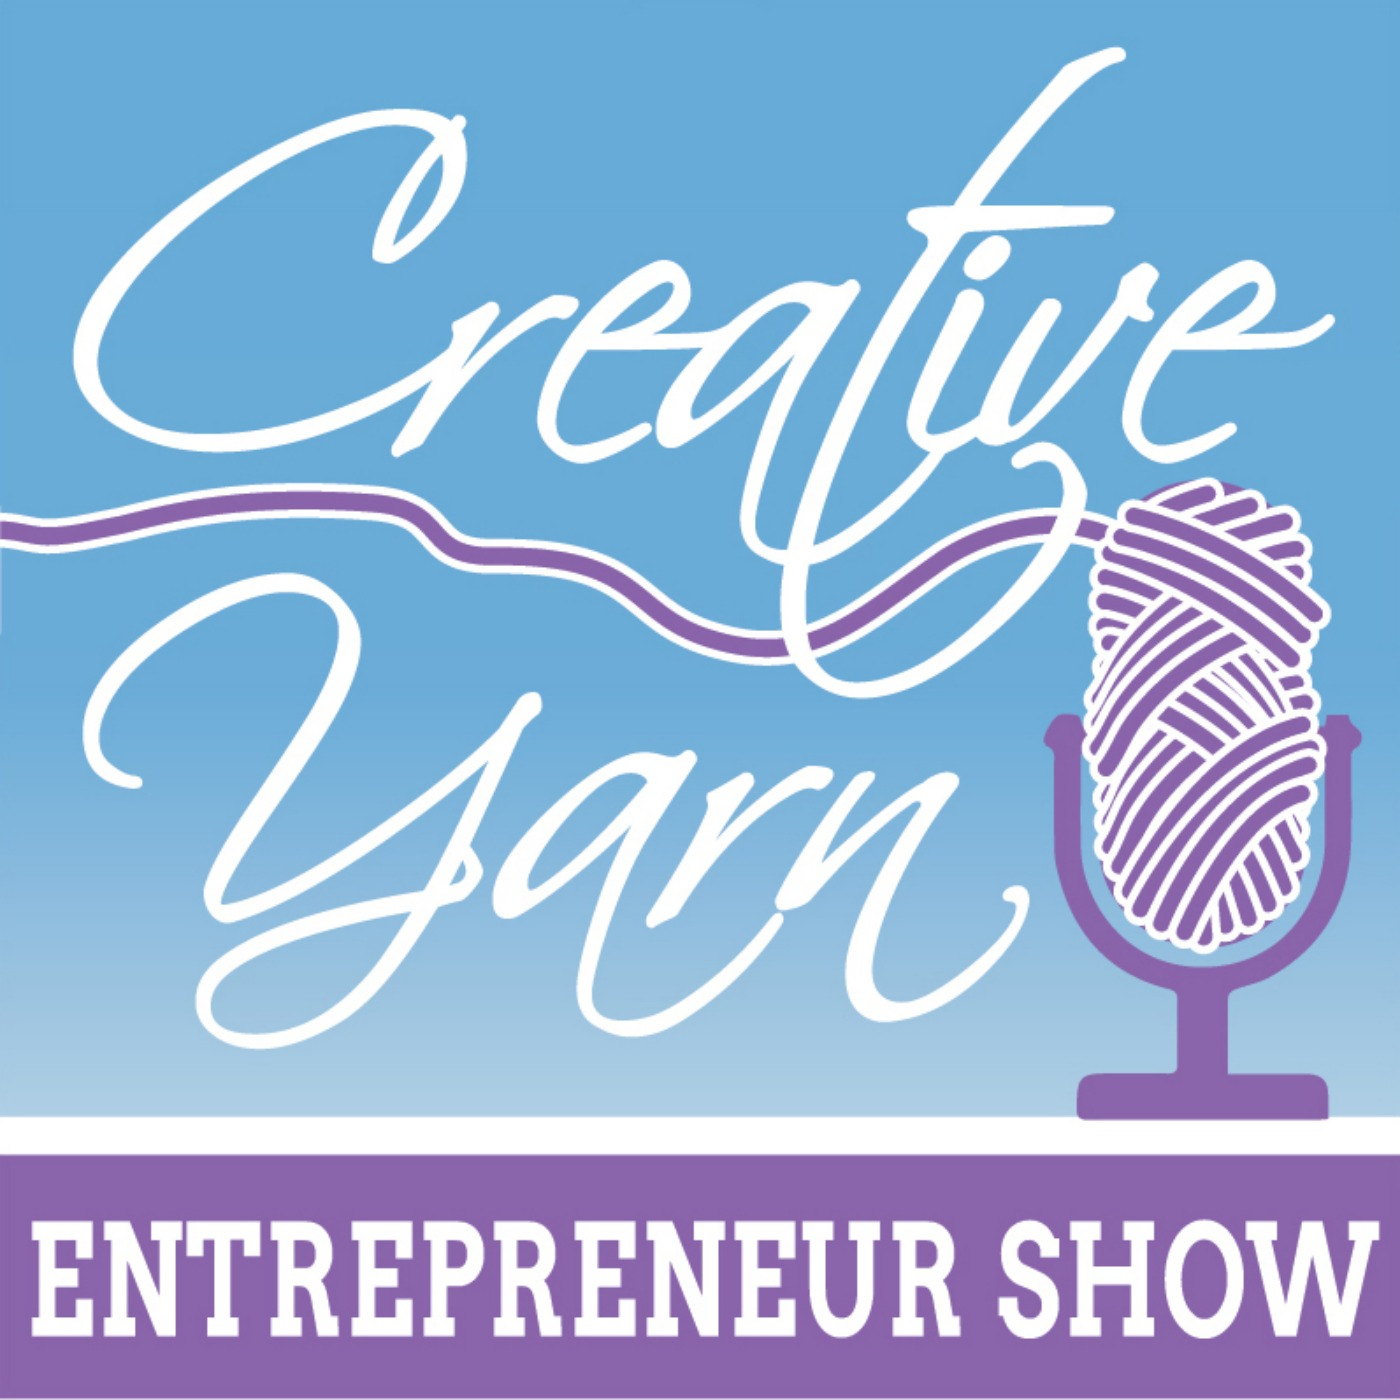 Farewell to Marinke from A Creative Being - The Creative Yarn Entrepreneur Show